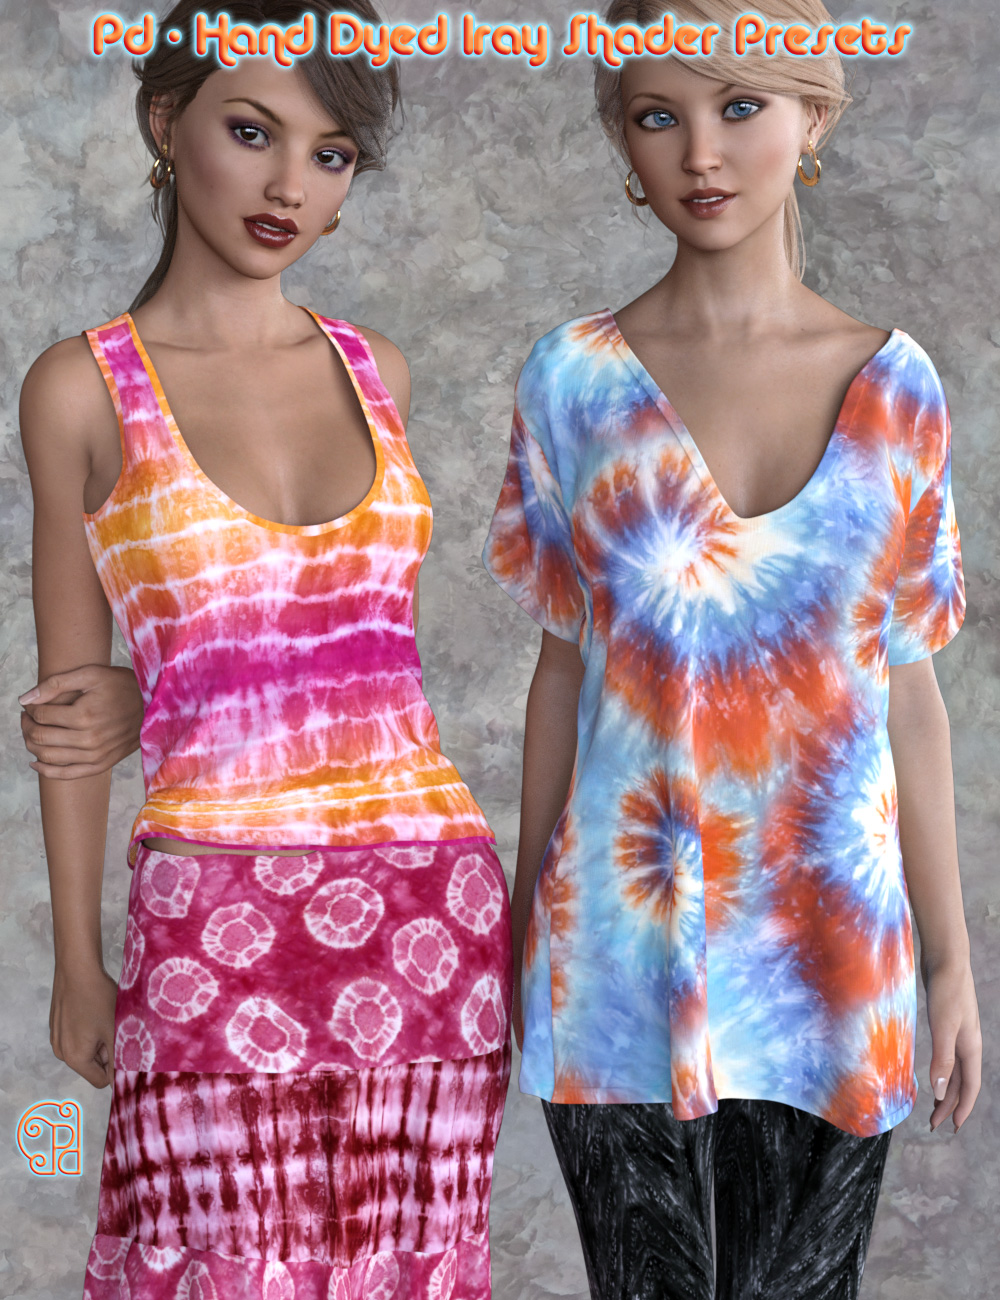 Pd Hand Dyed Iray Shader Presets by: parrotdolphin, 3D Models by Daz 3D